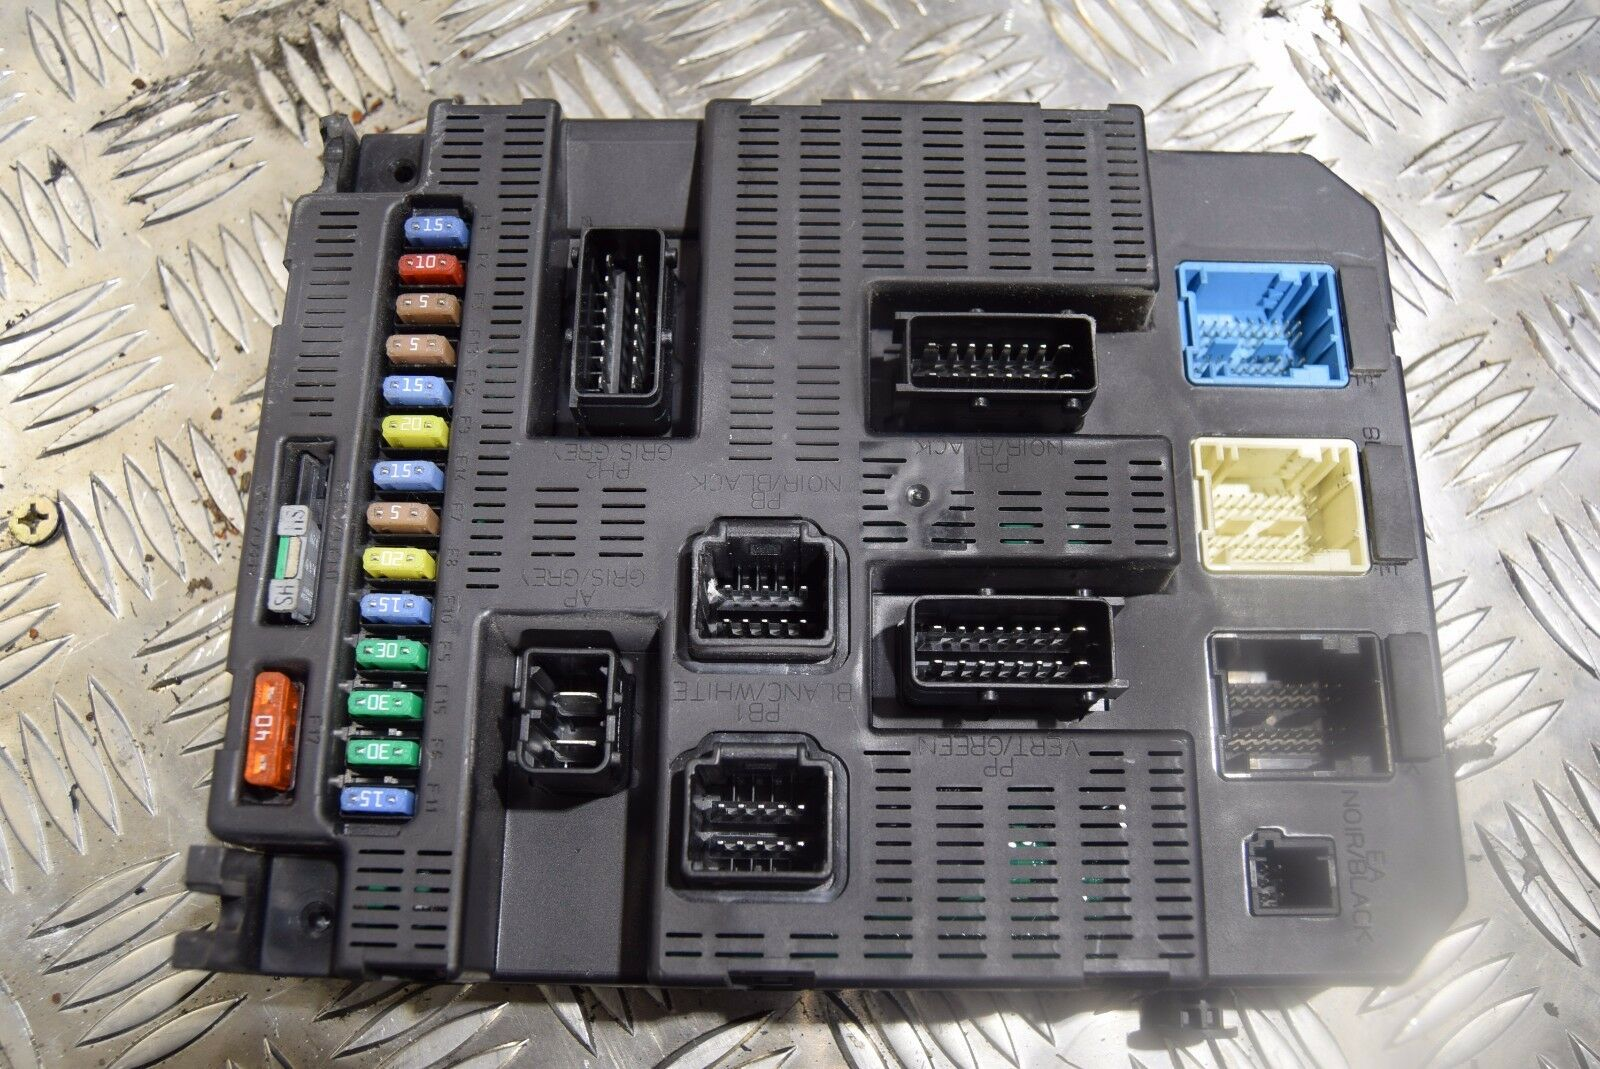 Dispatch Scudo Expert 20 Hdi Fusebox 9659285480 L1 3c 4999 Fuse Box Peugeot Van 1 Of 4only Available